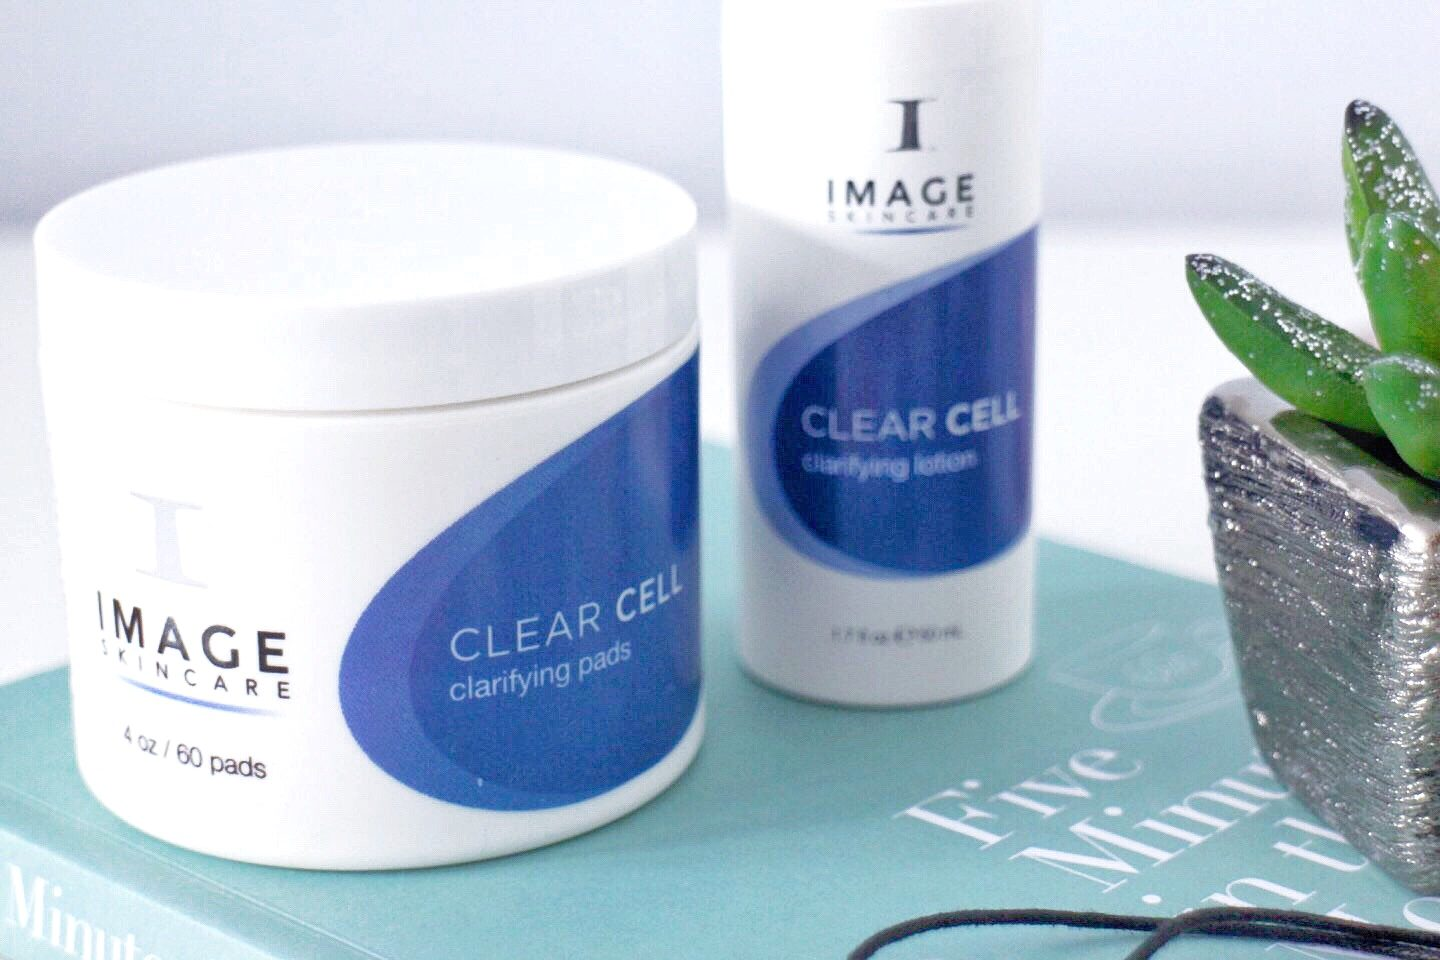 Skincare for Oily/Acne Skin